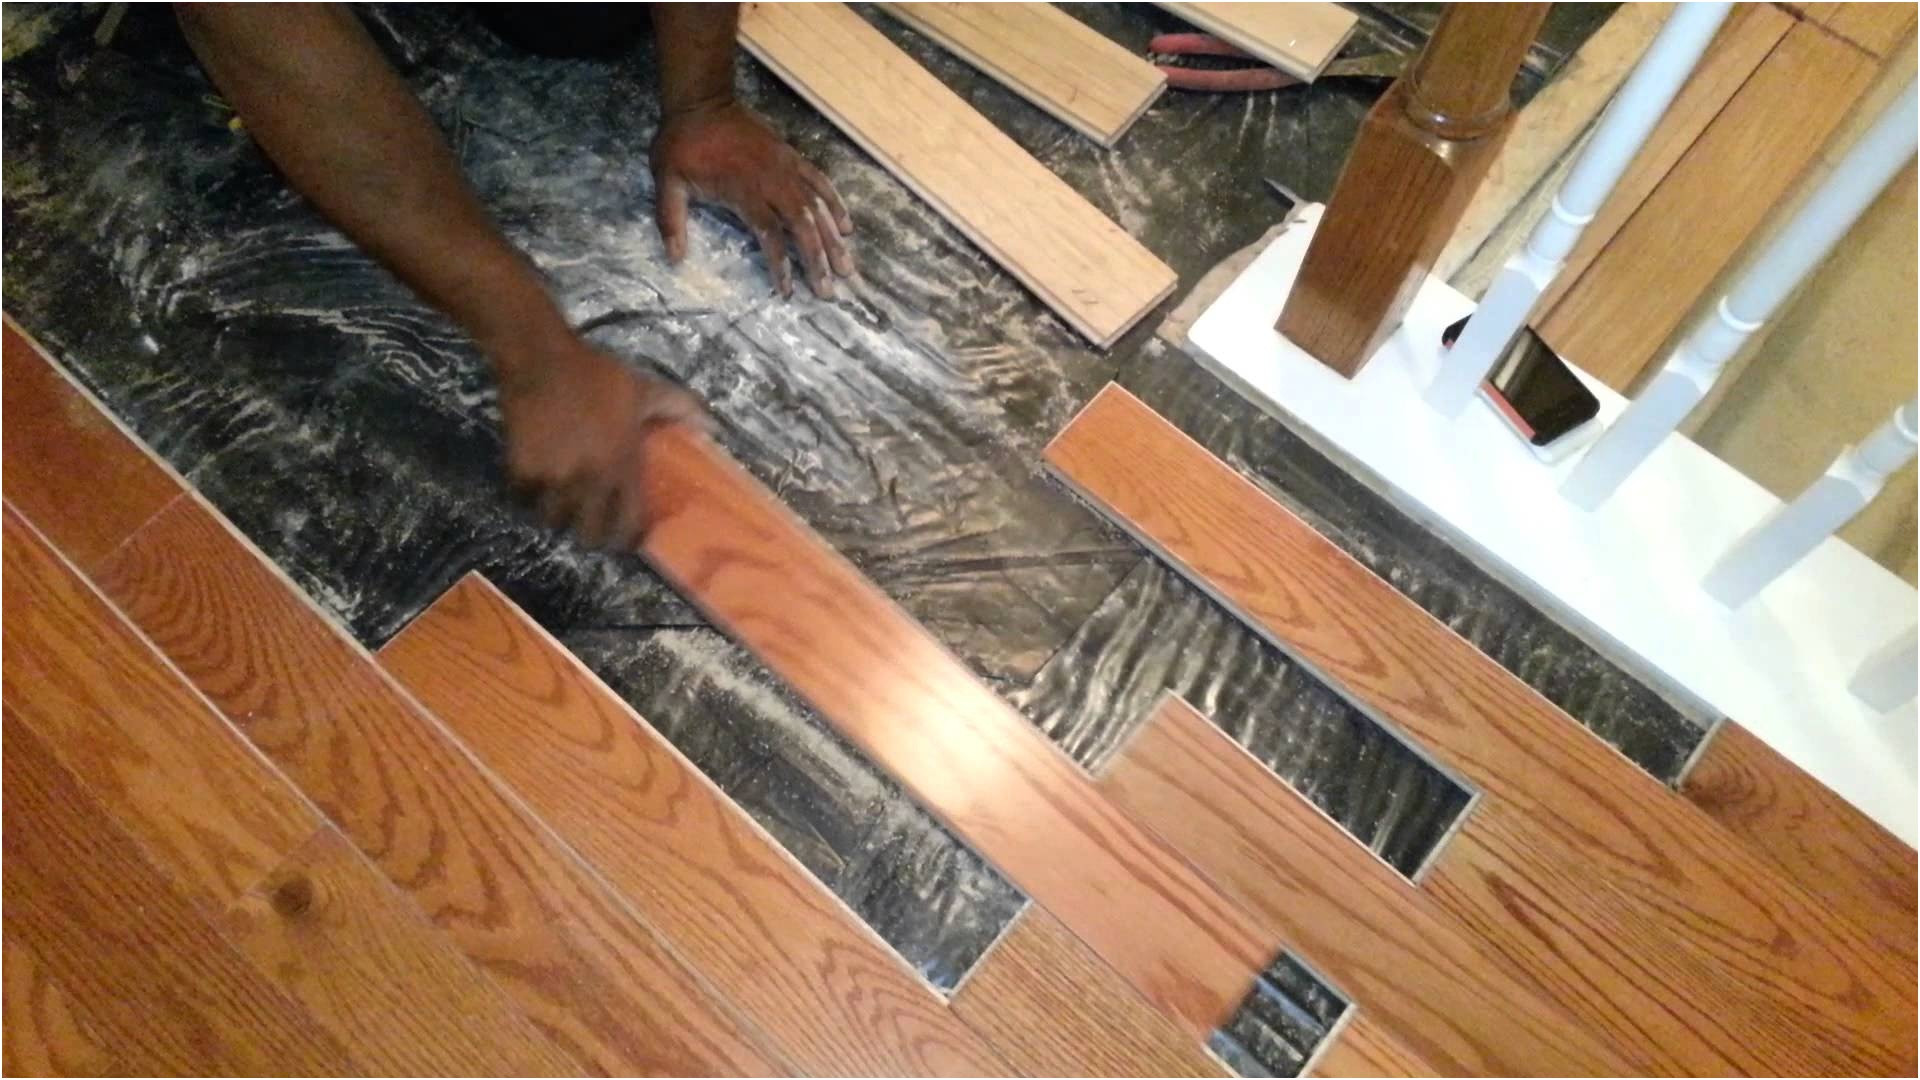 how to install engineered hardwood flooring over concrete of best way to install engineered wood flooring over concrete how to with best way to install engineered wood flooring over concrete hardwood floor installation hardwood floor nailer installing